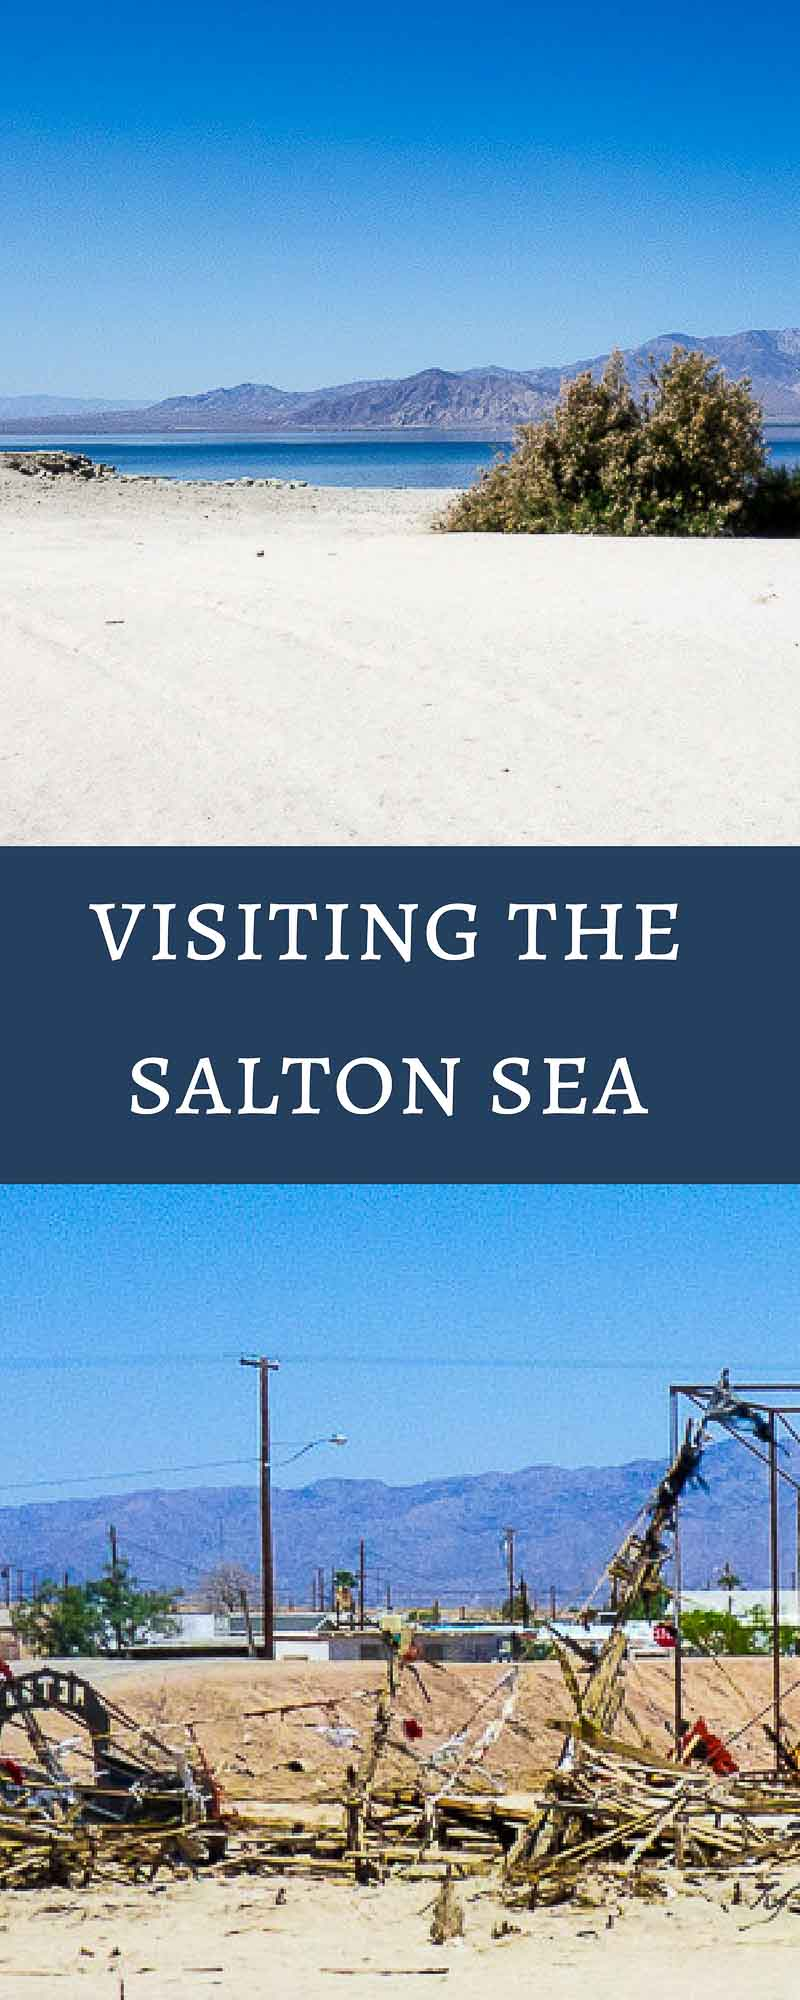 Once know as the next hot vacation spot for Southern Californians, the Salton Sea is now a tourist spot for a whole different reason - to check out the neat art work.salvation mountain, slabs, bombay beach, salton city, visit California, how to explore the salton sea, why visit the salton sea, california road trips, easy jesus, salton sea religion, Salton sea attractions, salton sea photography